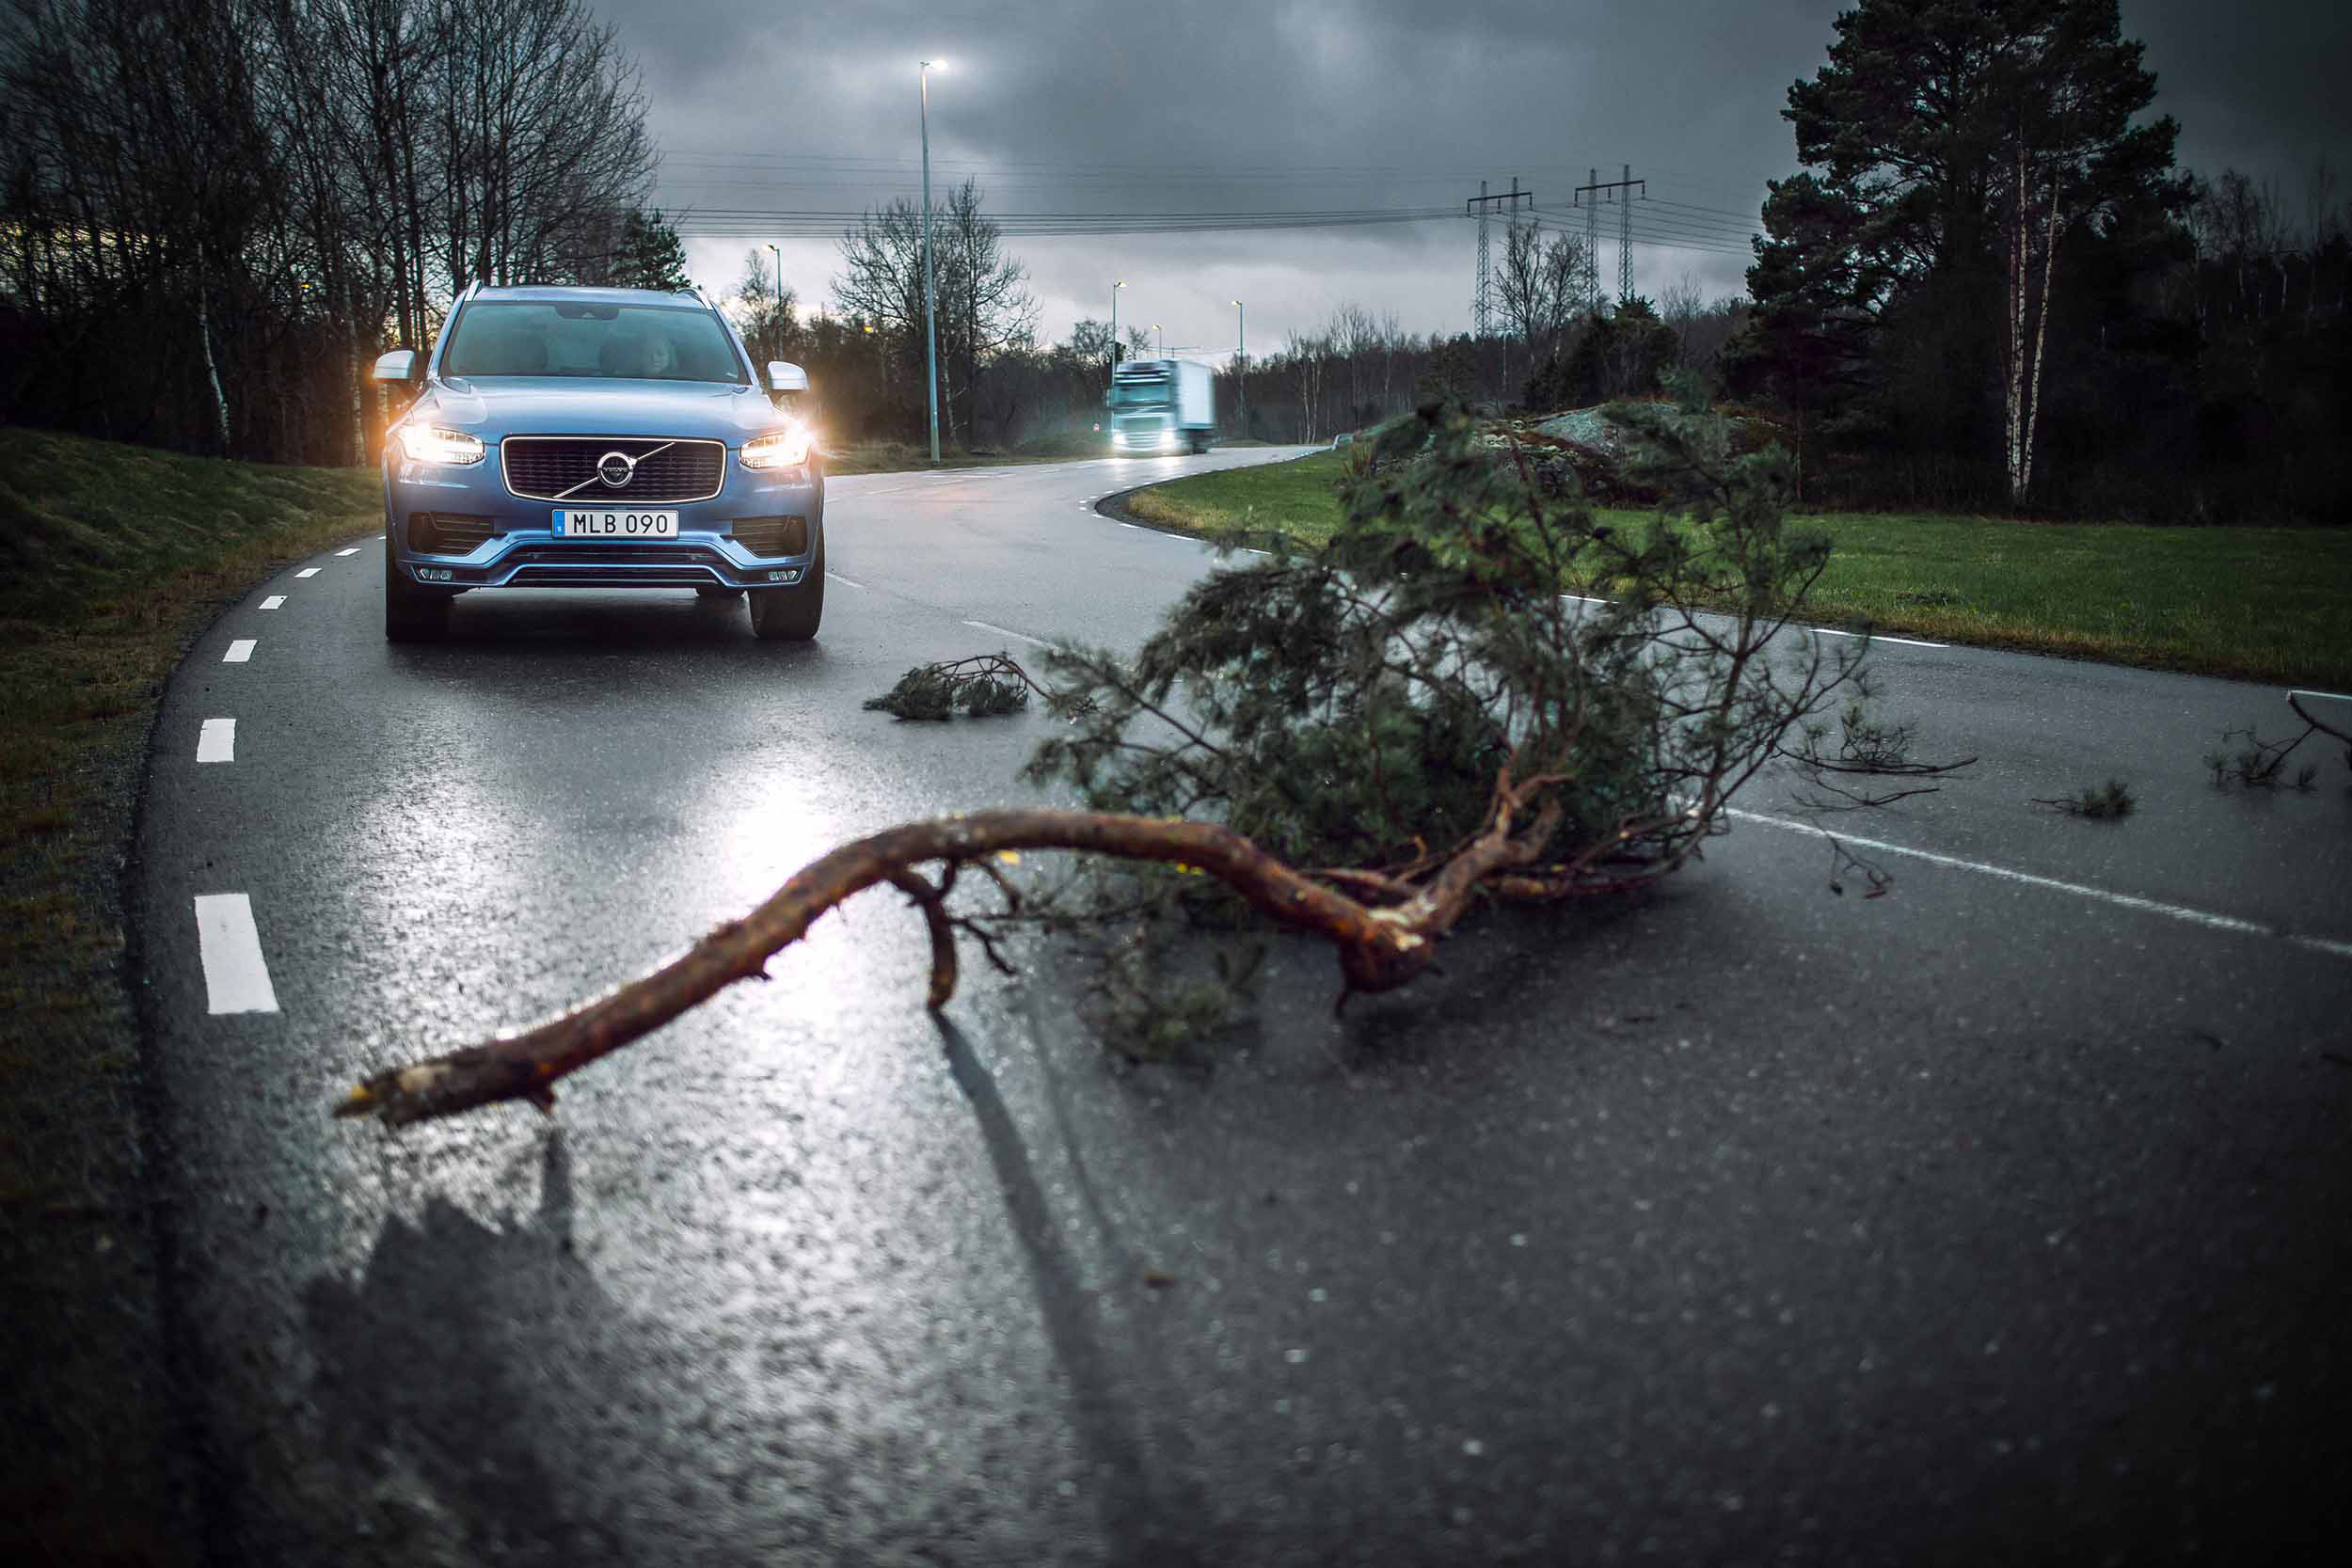 Volvo cars and Volvo trucks with Connected Safety activated can now alert each other to risky situations on the road